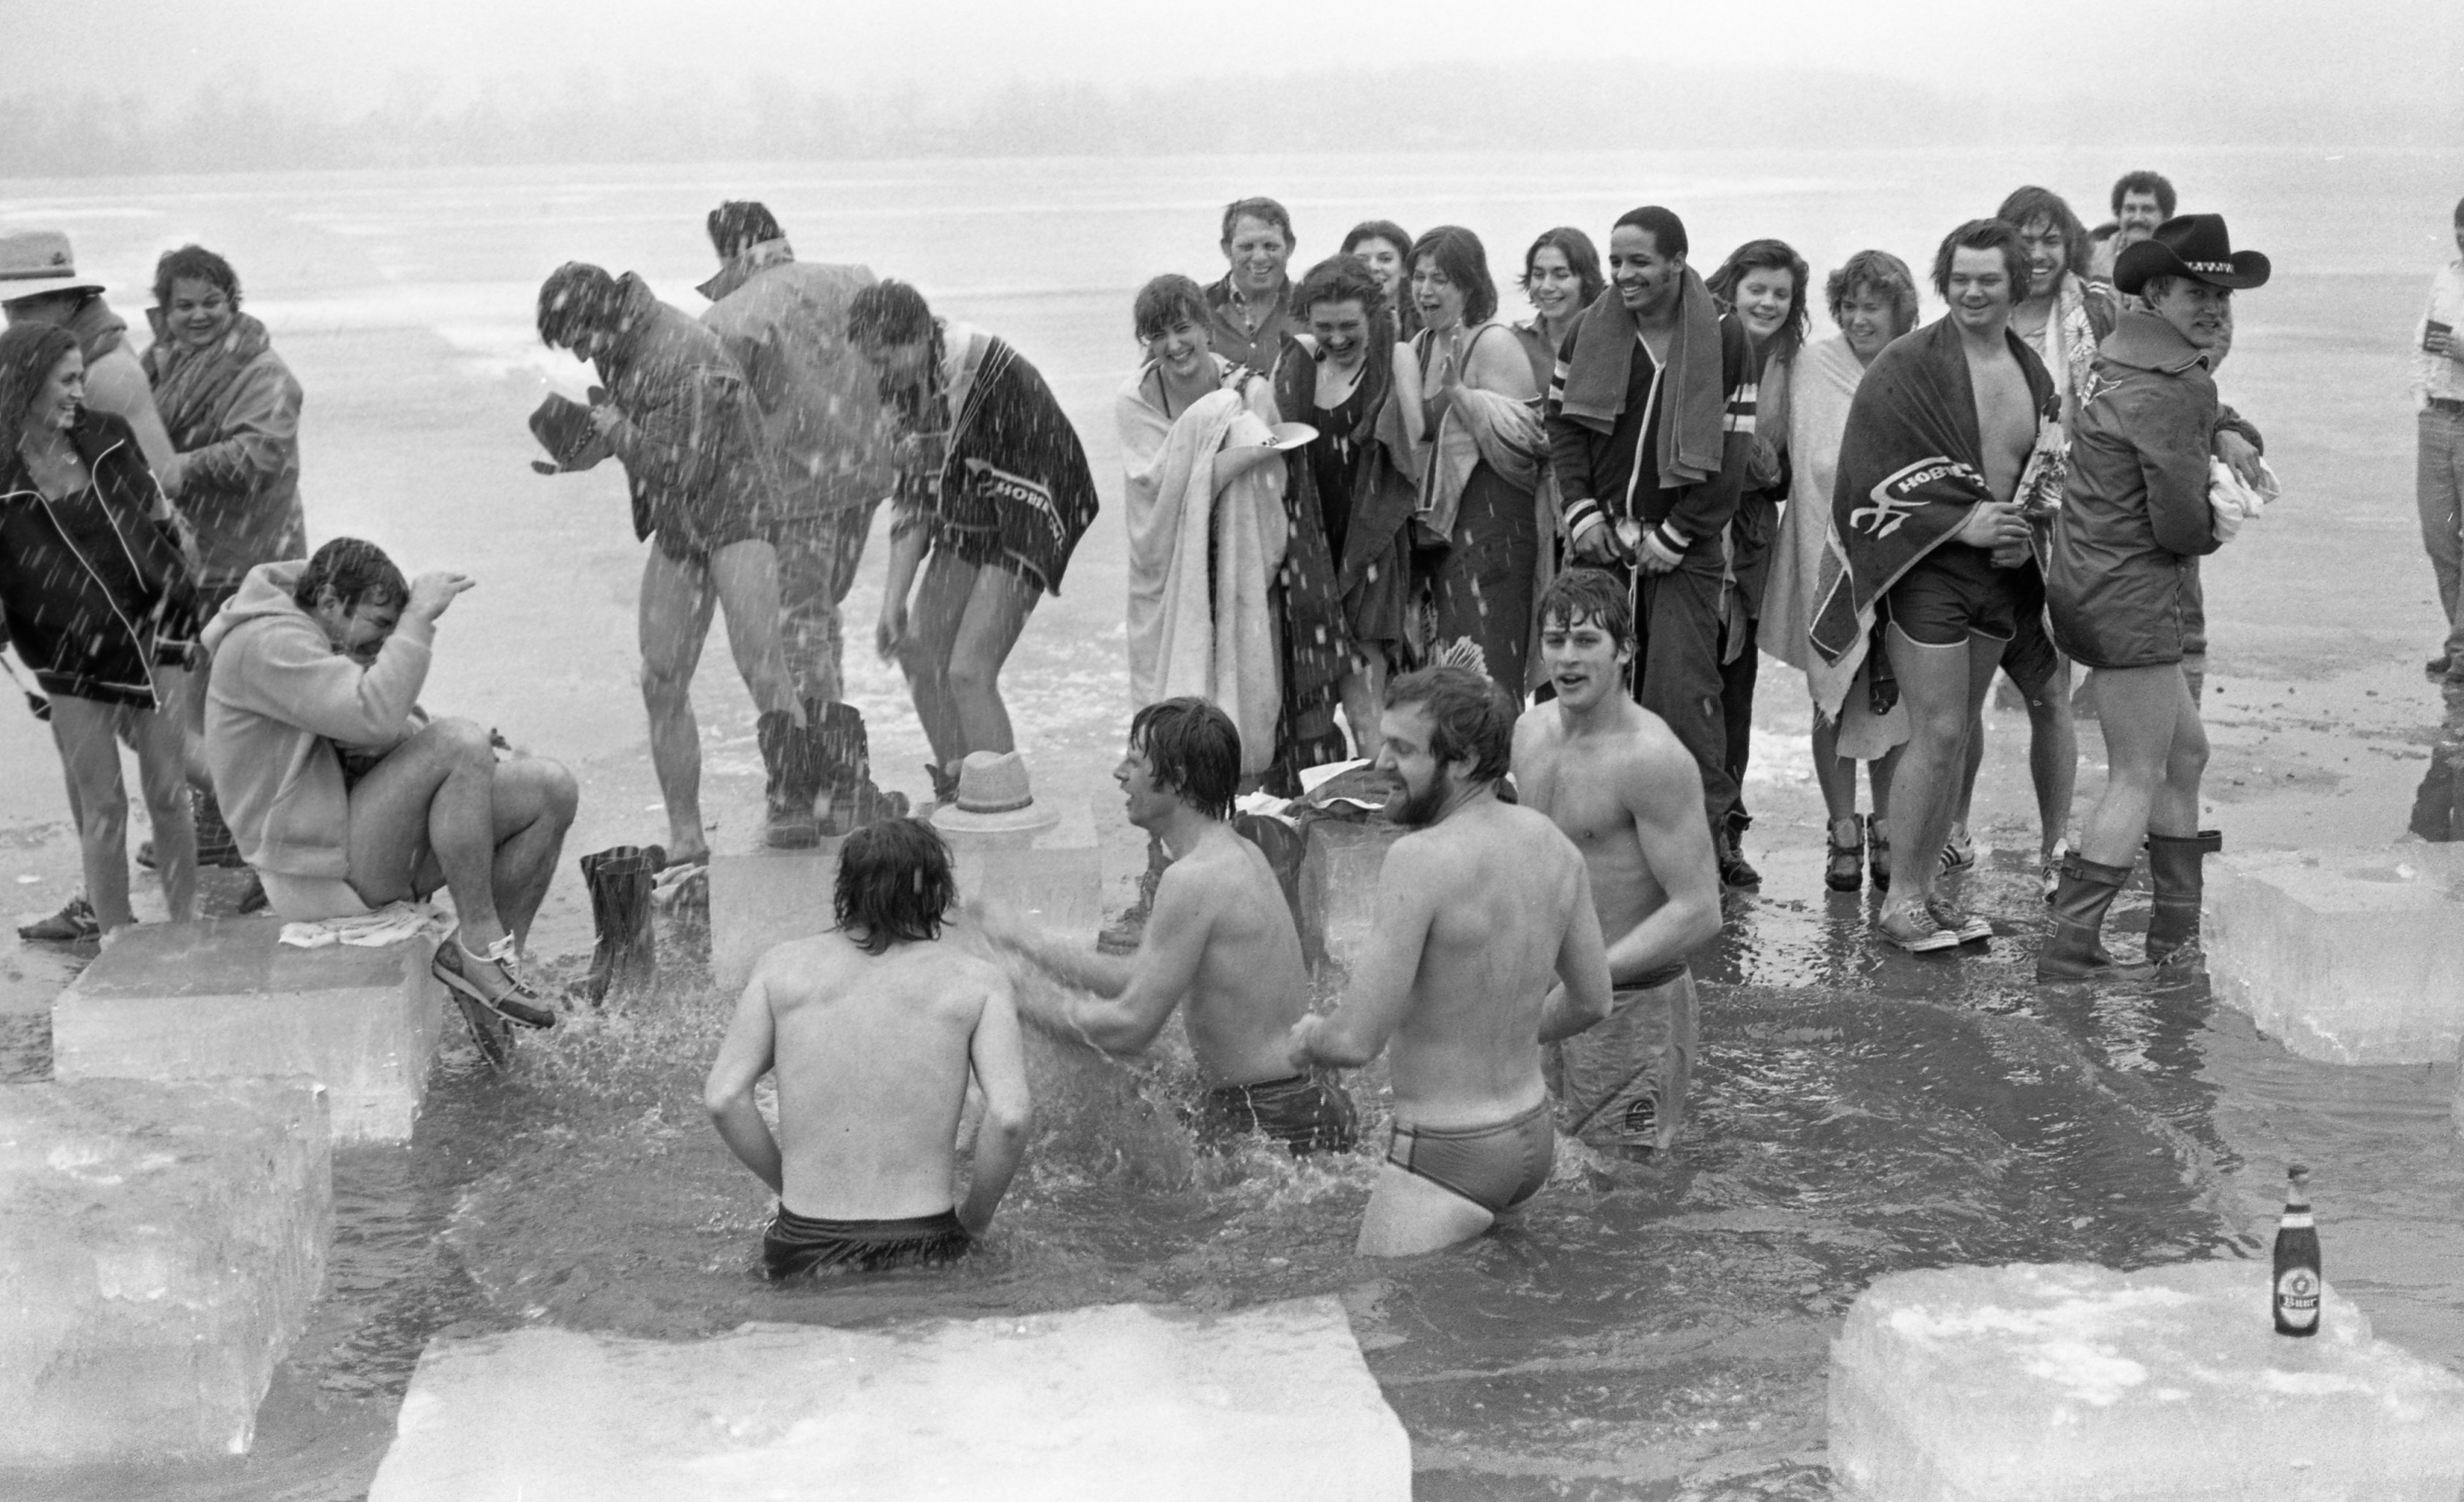 Members Of The Polar Bear Club Take Their Annual Plunge In Whitmore Lake, February 1980 image